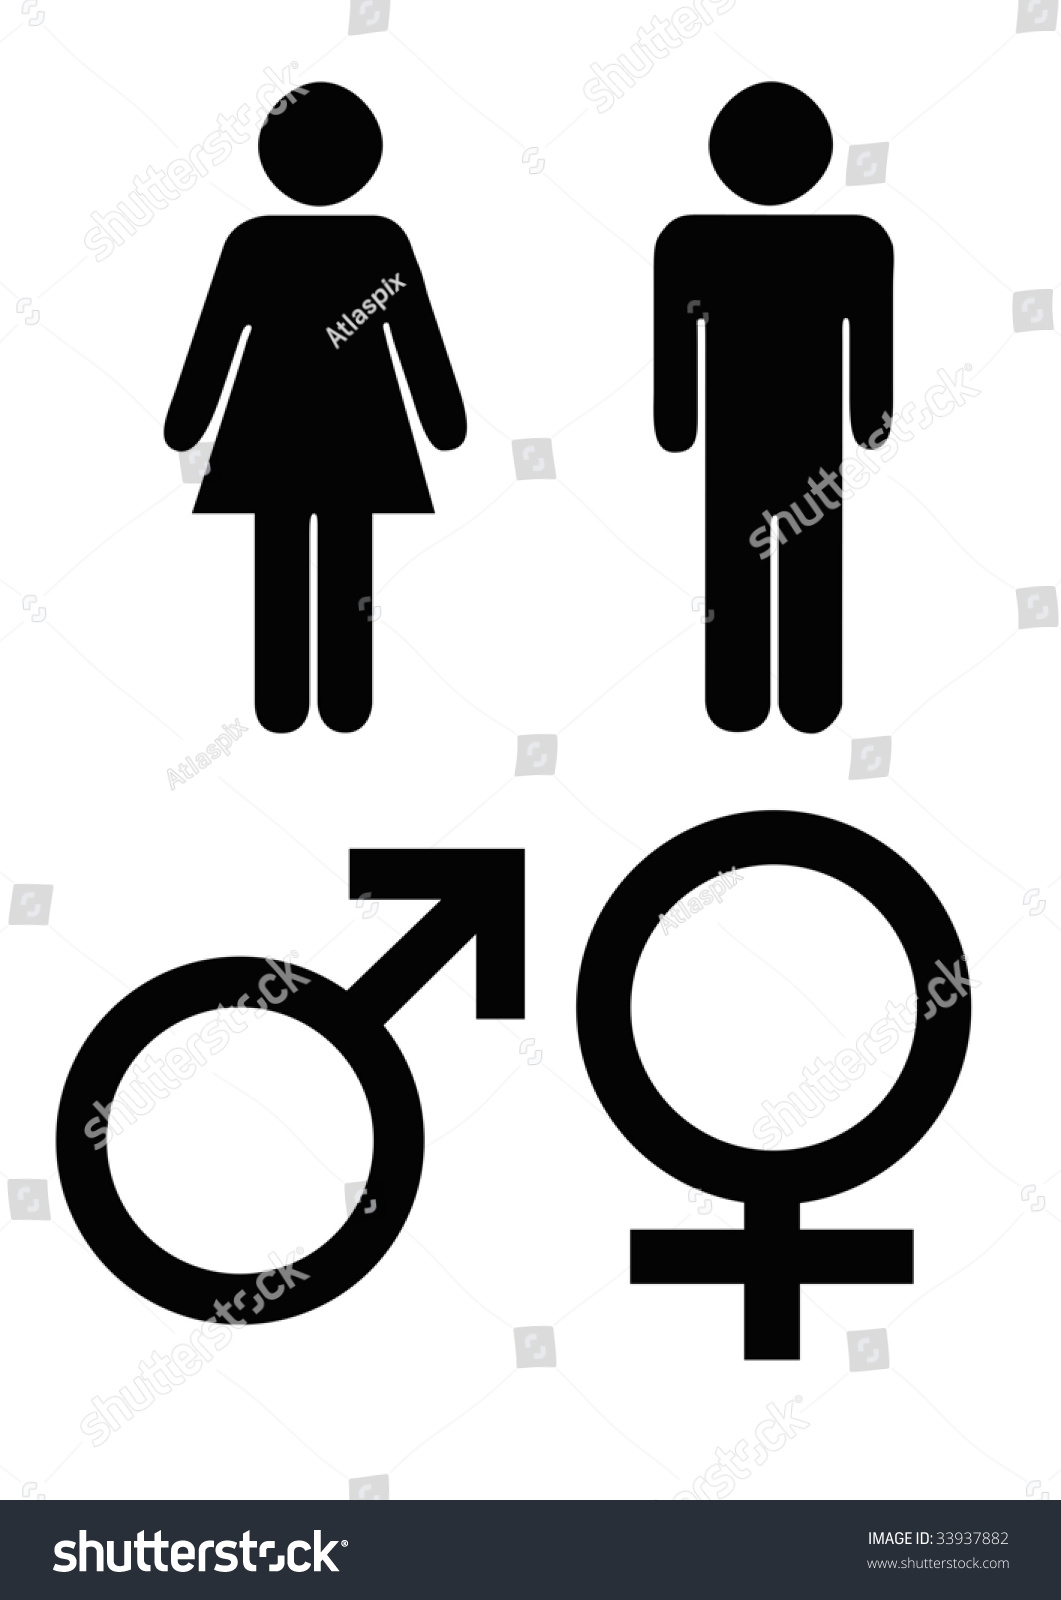 Male Female Gender Symbols Black Silhouette Stock Illustration